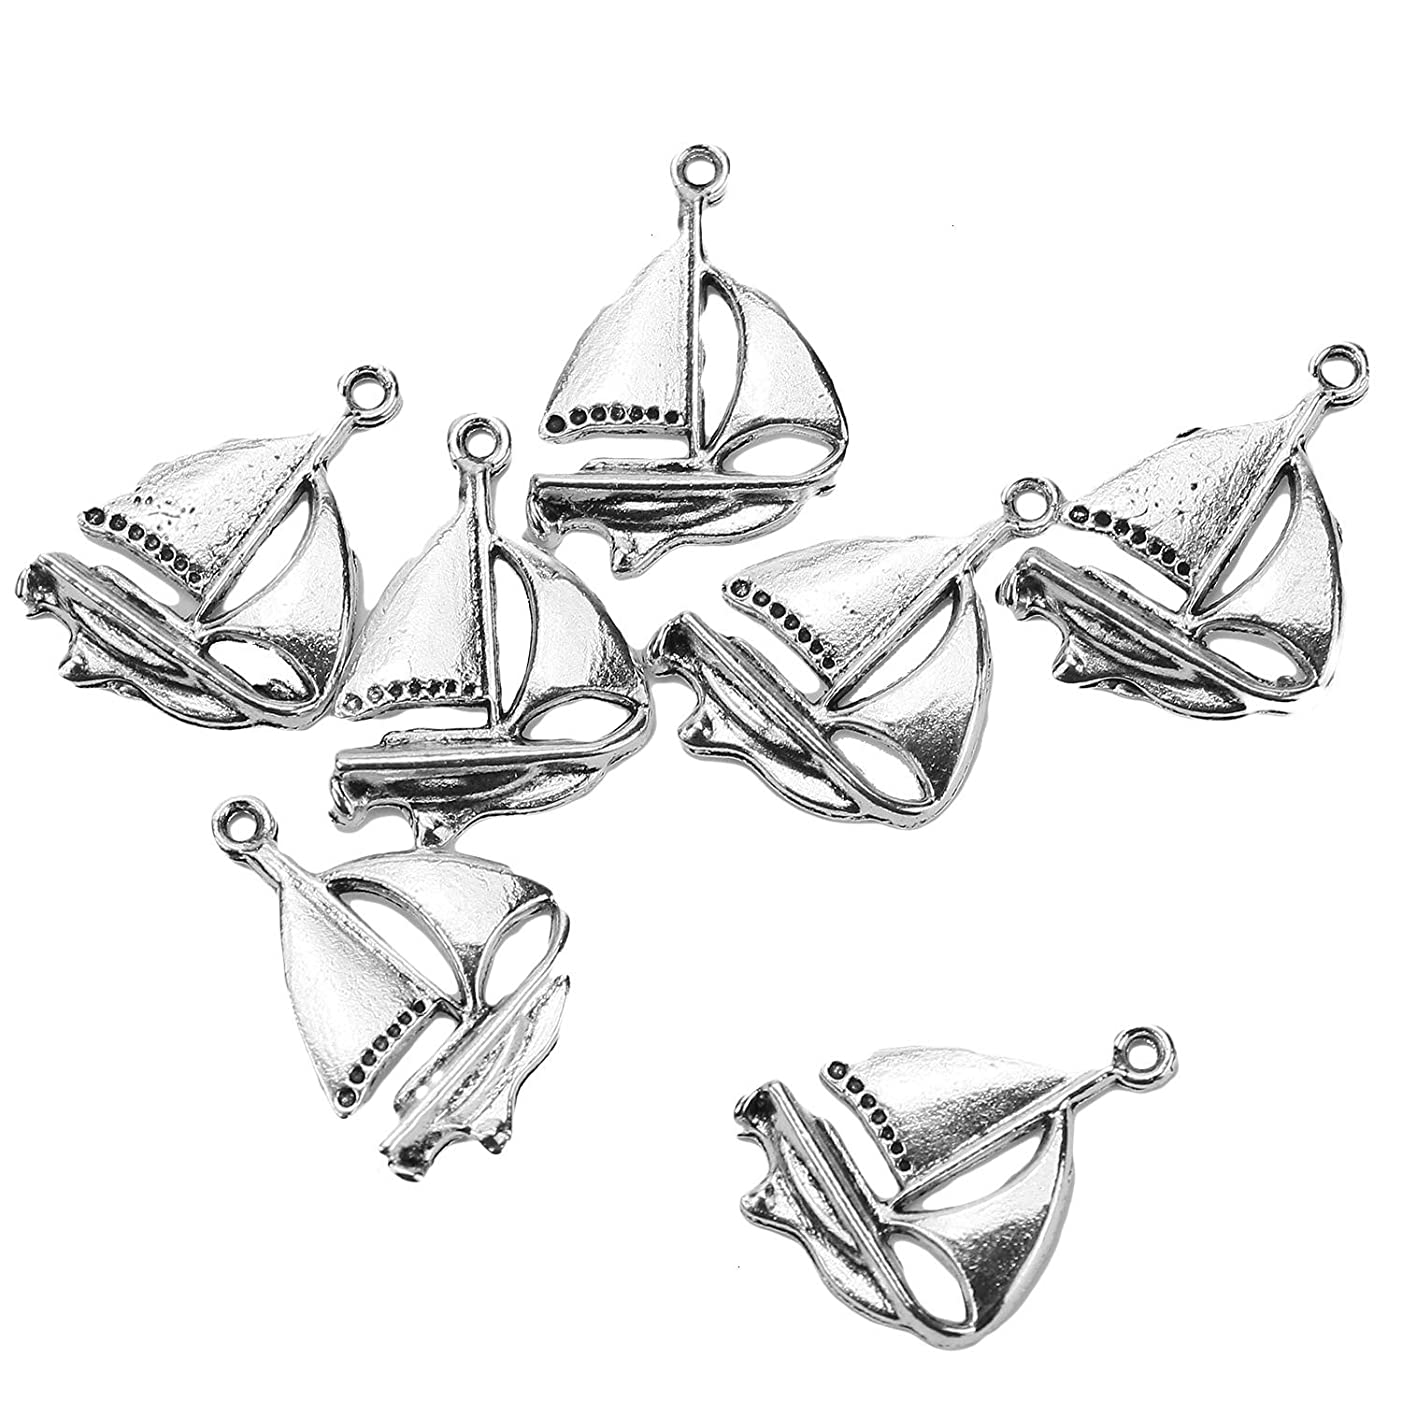 Monrocco 100 Pcs Antique Silver Tone Yacht Style Sailboat Charms Vintage Crafting Pendant Jewelry Making Supplies DIY for Necklace and Bracelet